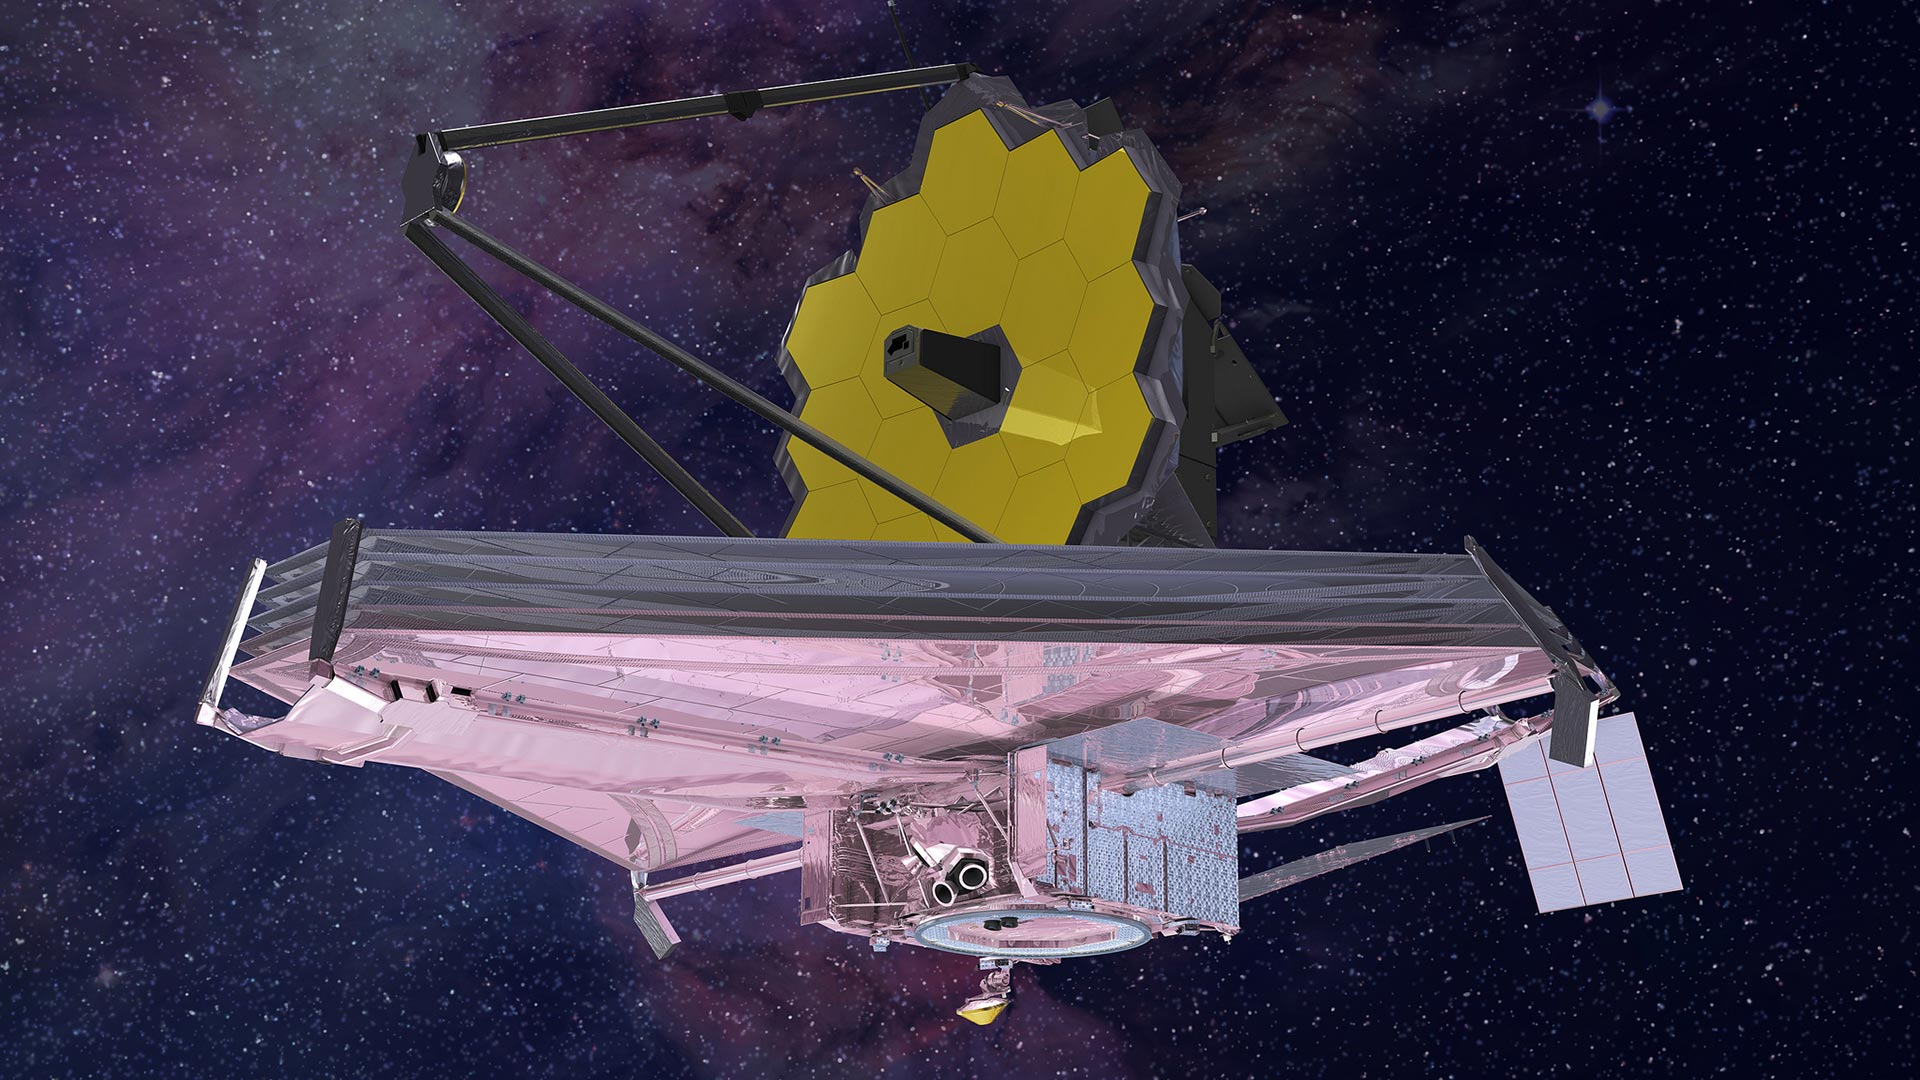 The James Webb Space Telescope Is the Largest, Most Powerful Space Telescope Ever Built [Video] - SciTechDaily